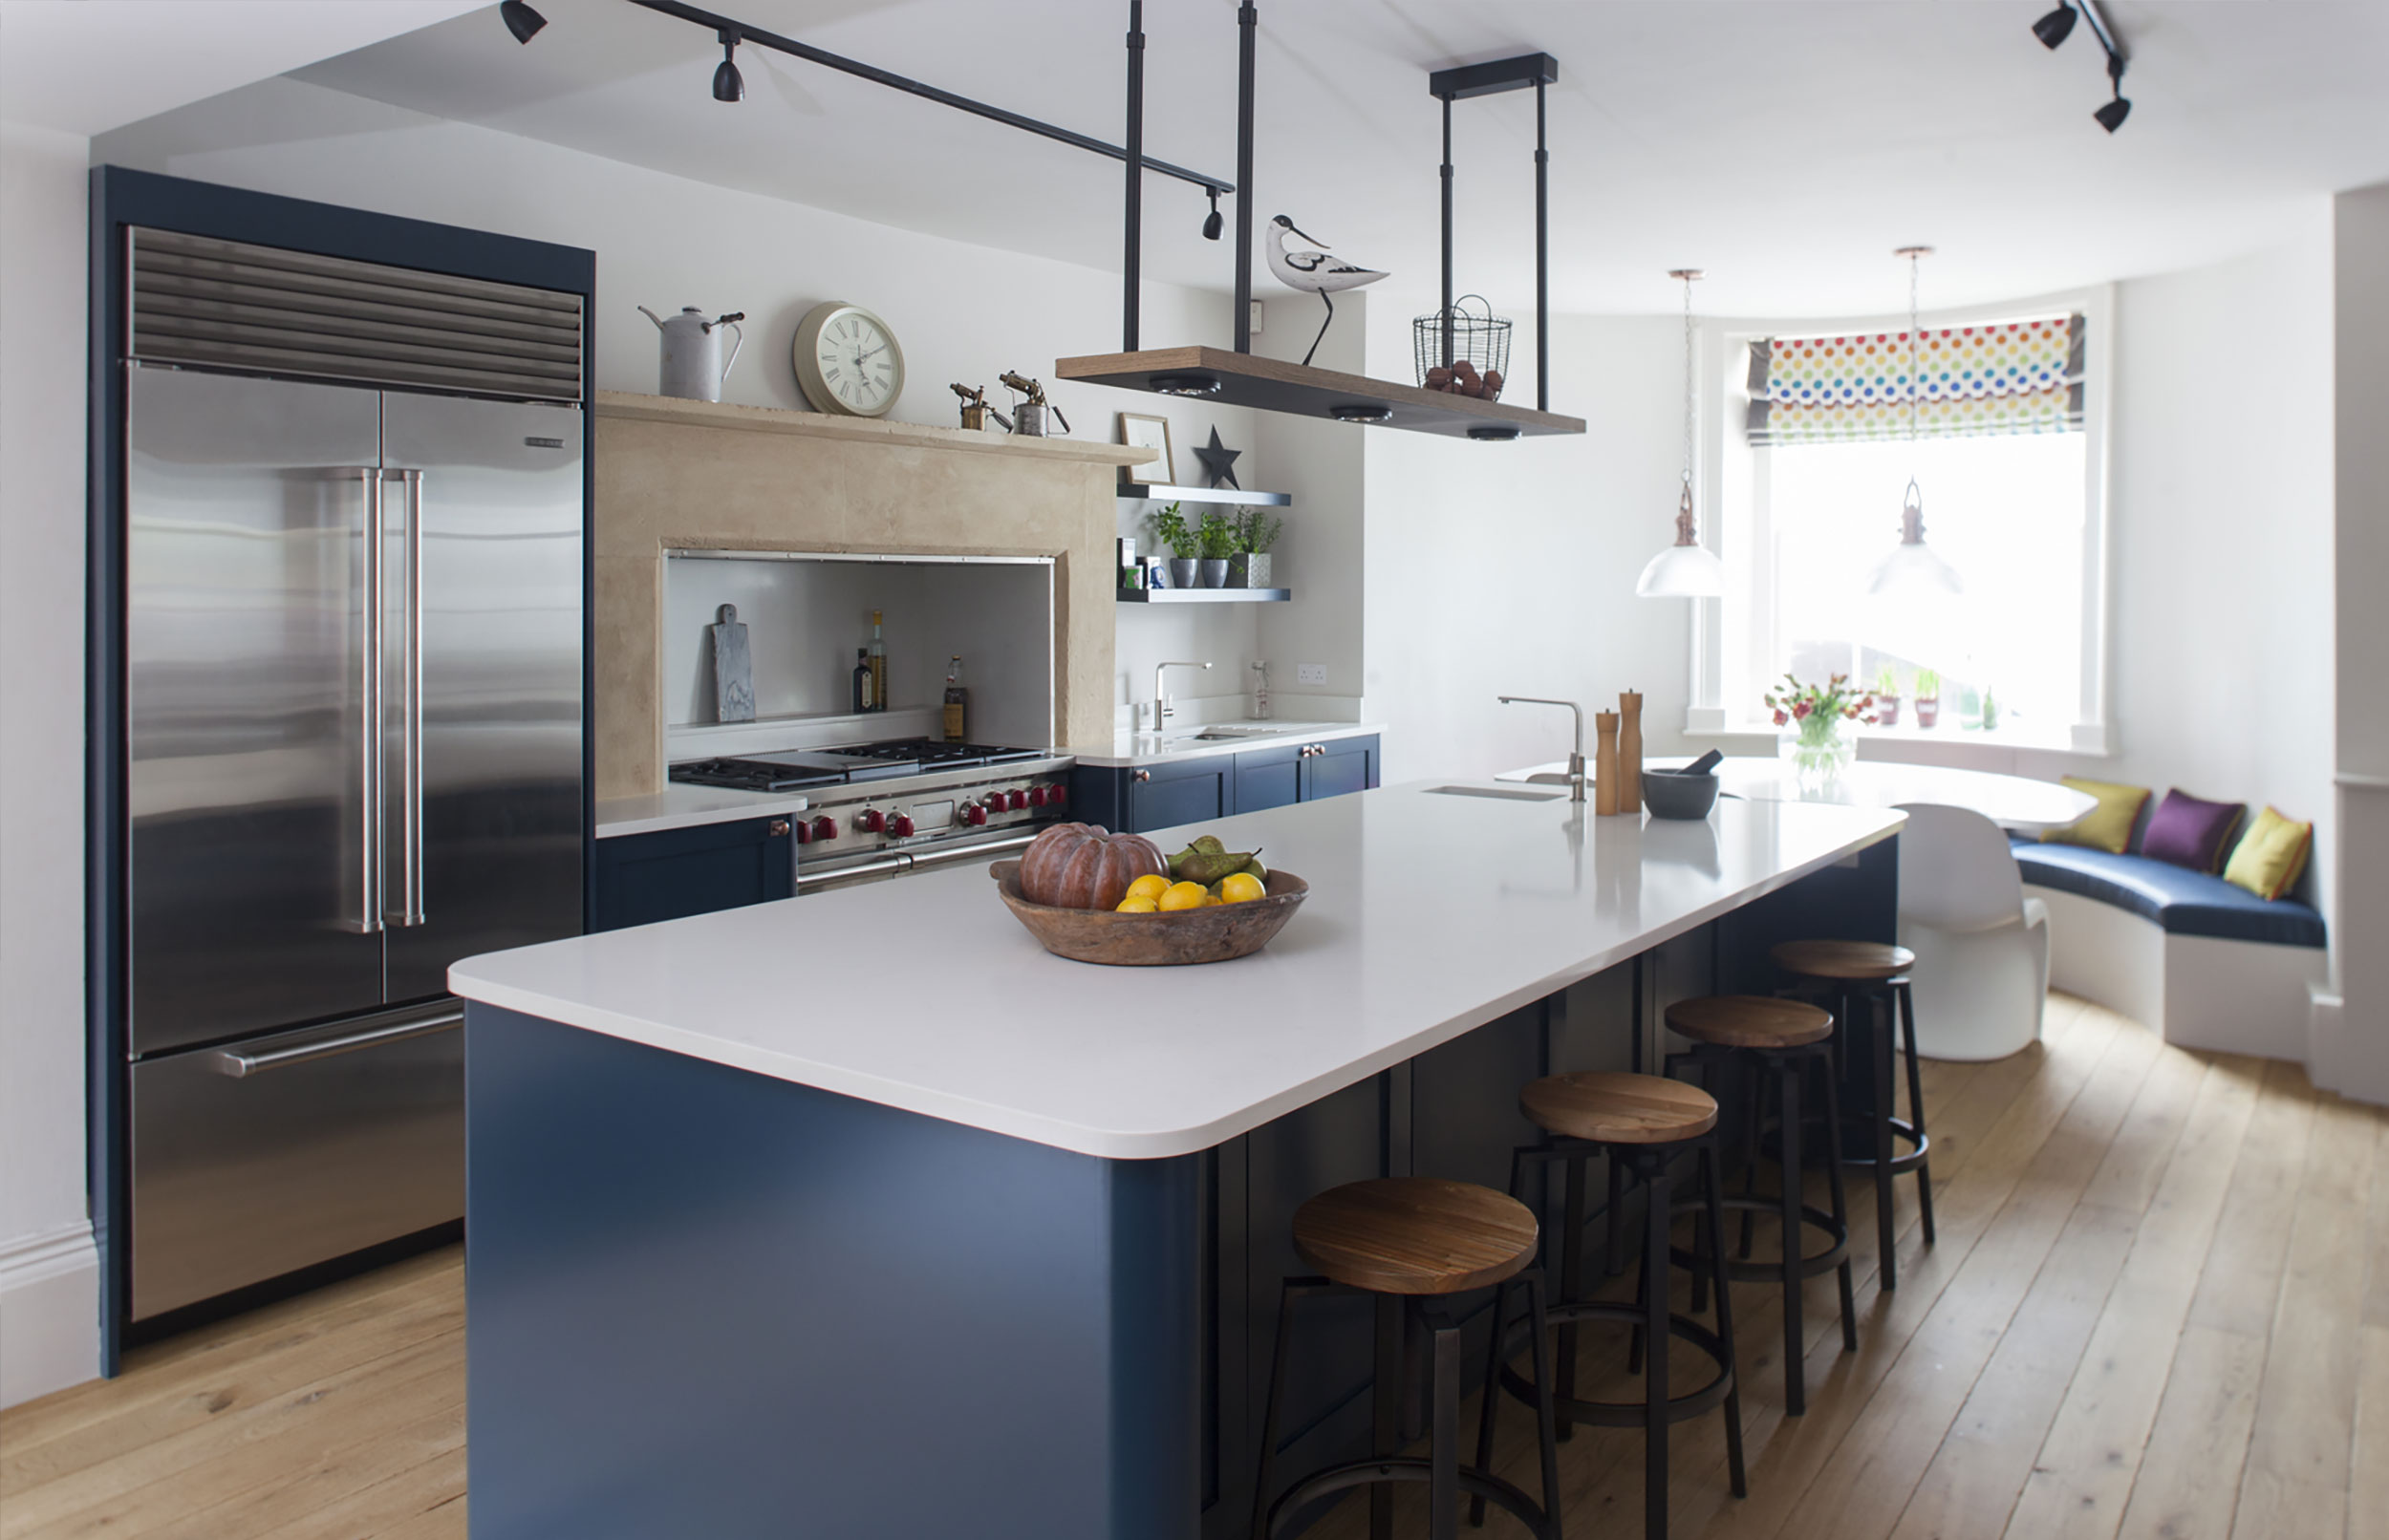 Bespoke kitchen design in central bath bath kitchen company for Kitchen design companies